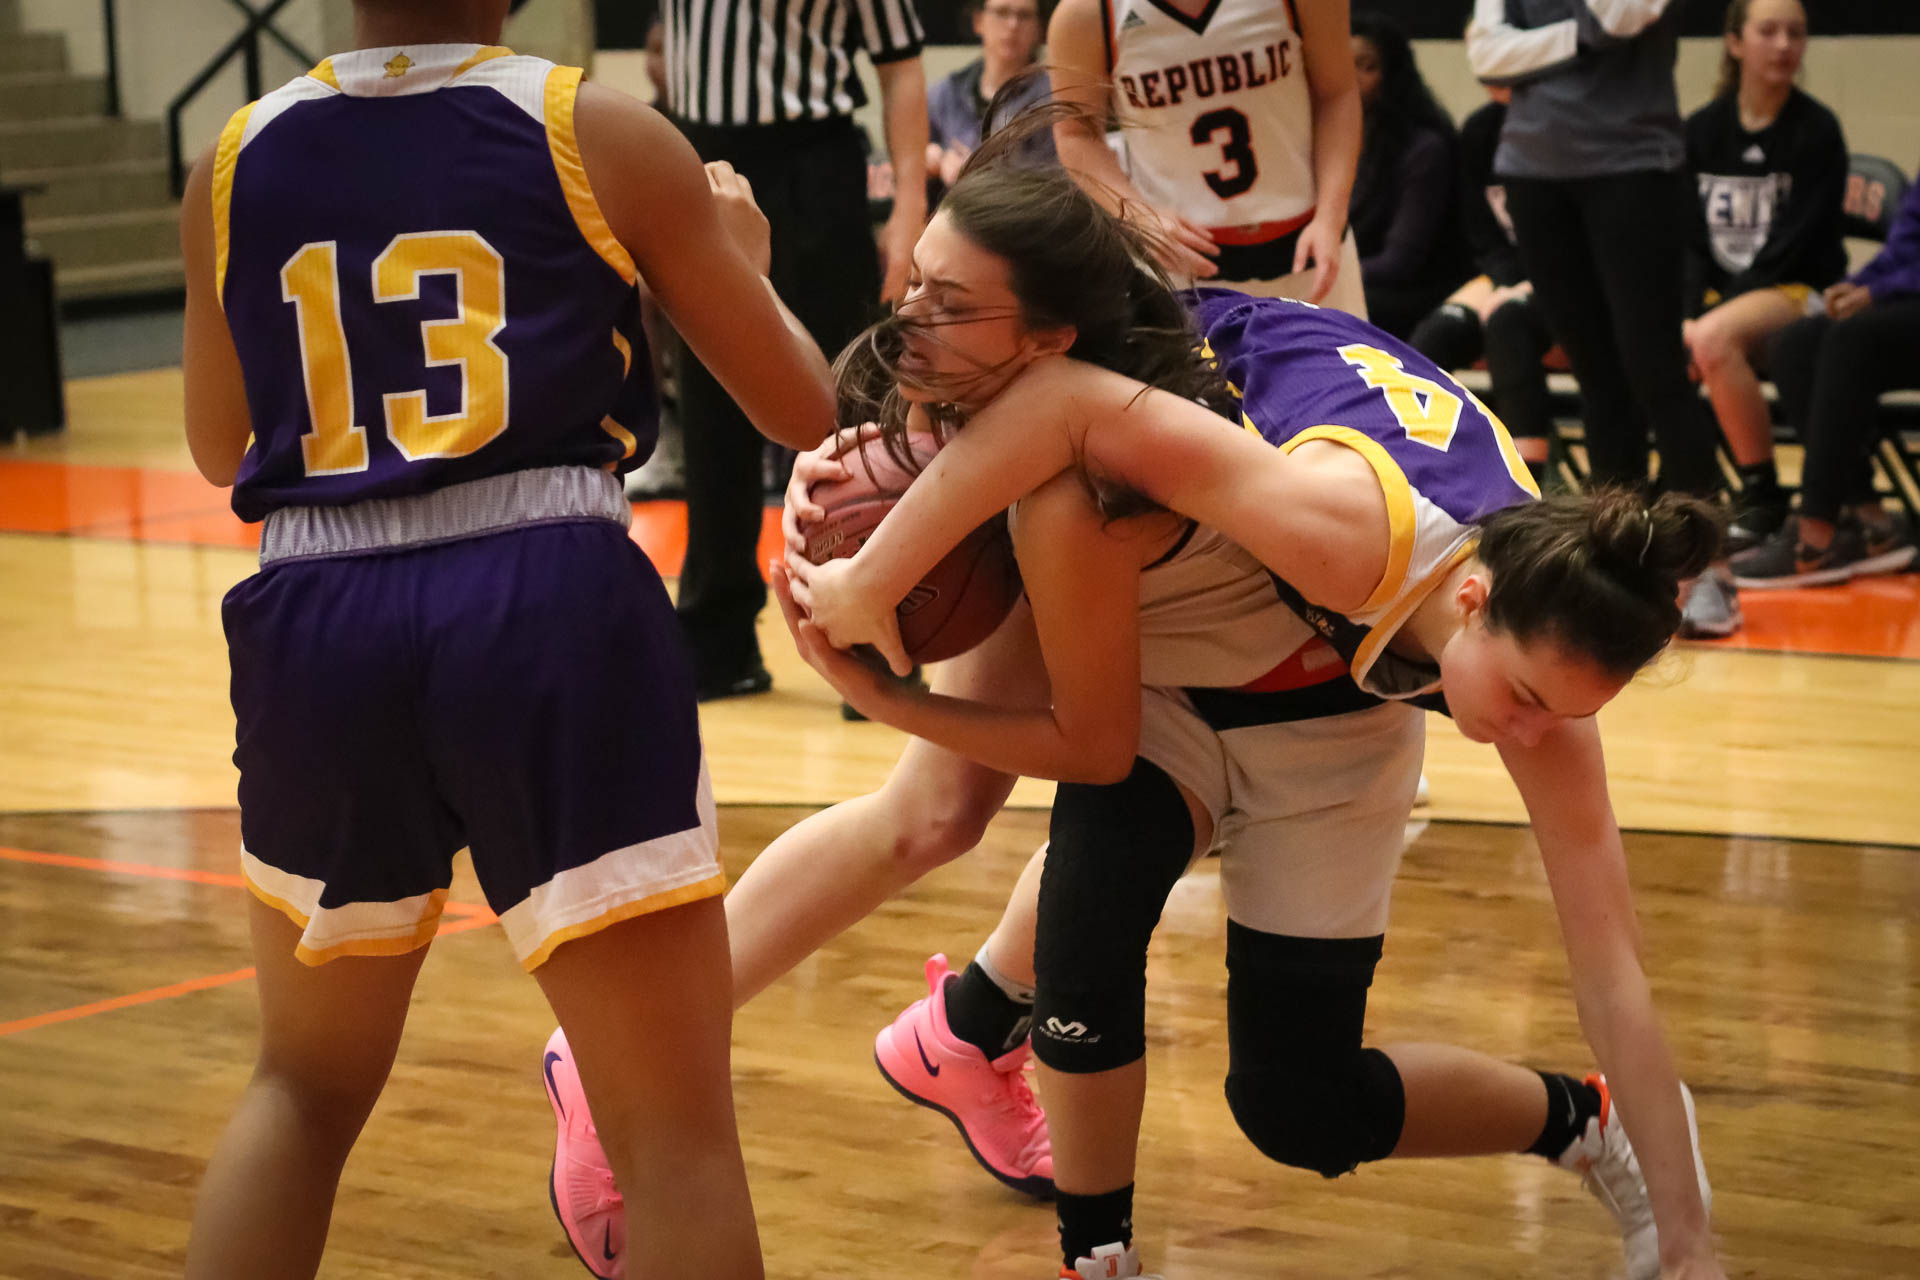 Worth The Wait: Lady Tigers Whip Kewpies In Belated Home Opener